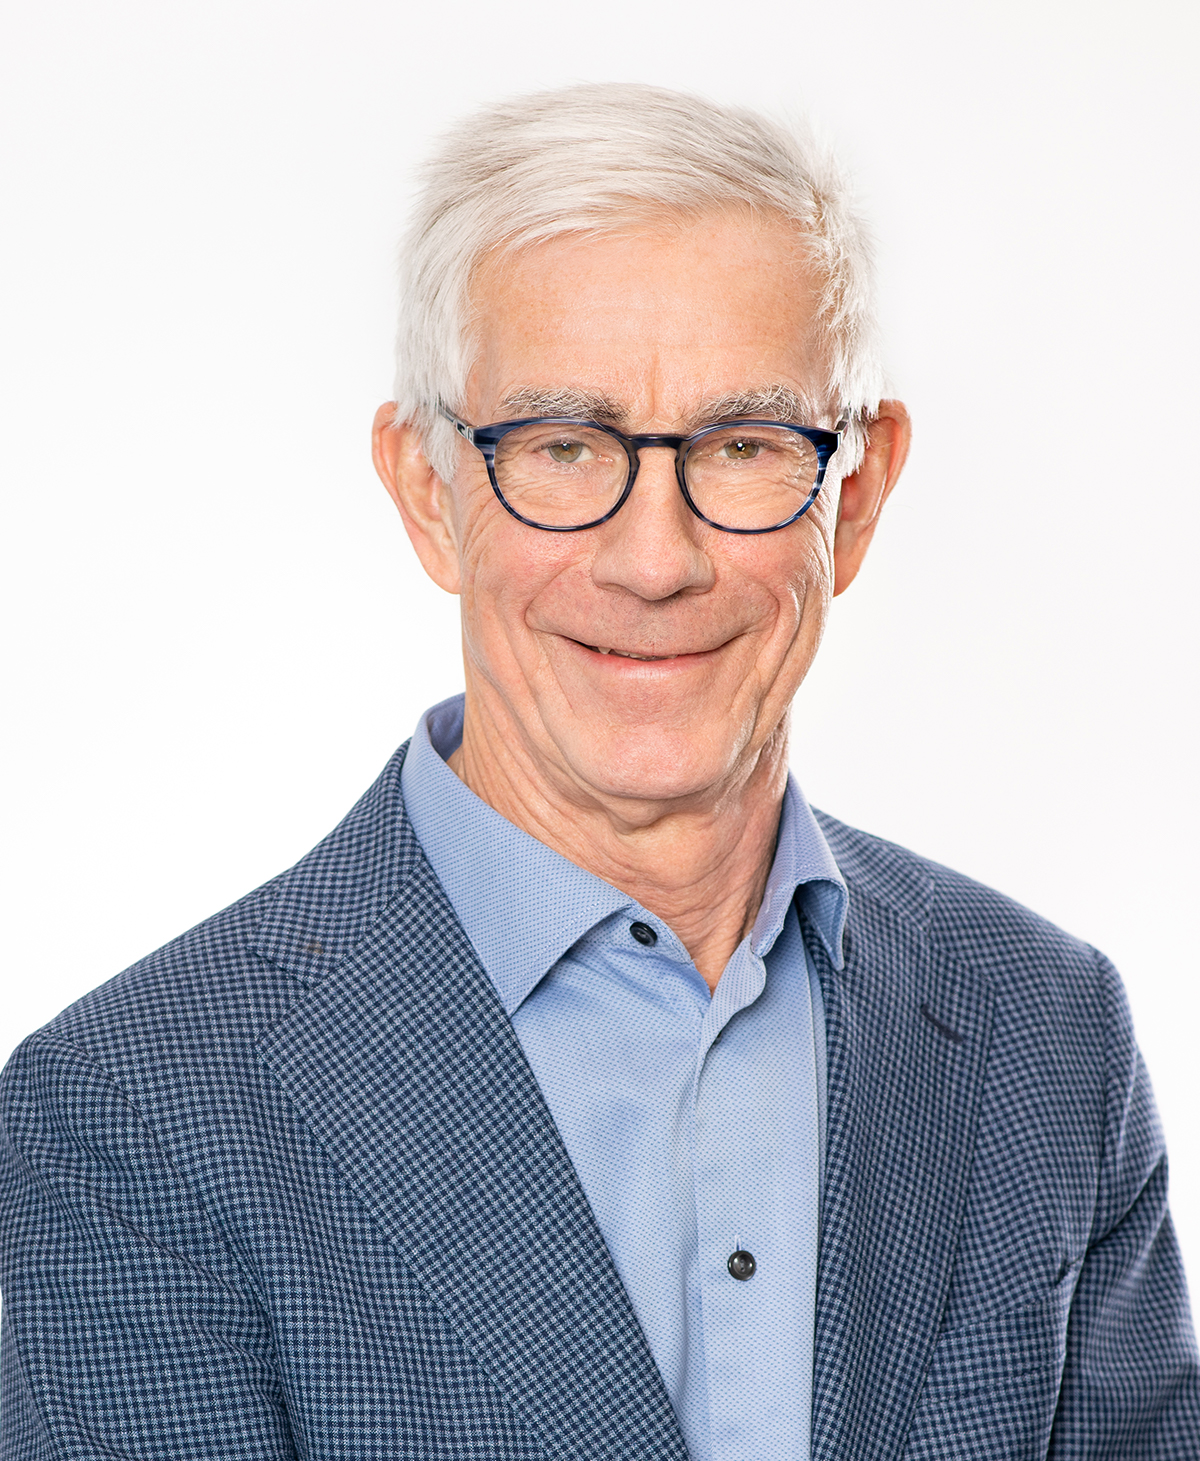 Board of directors Lipum - Prof Olle Hernell